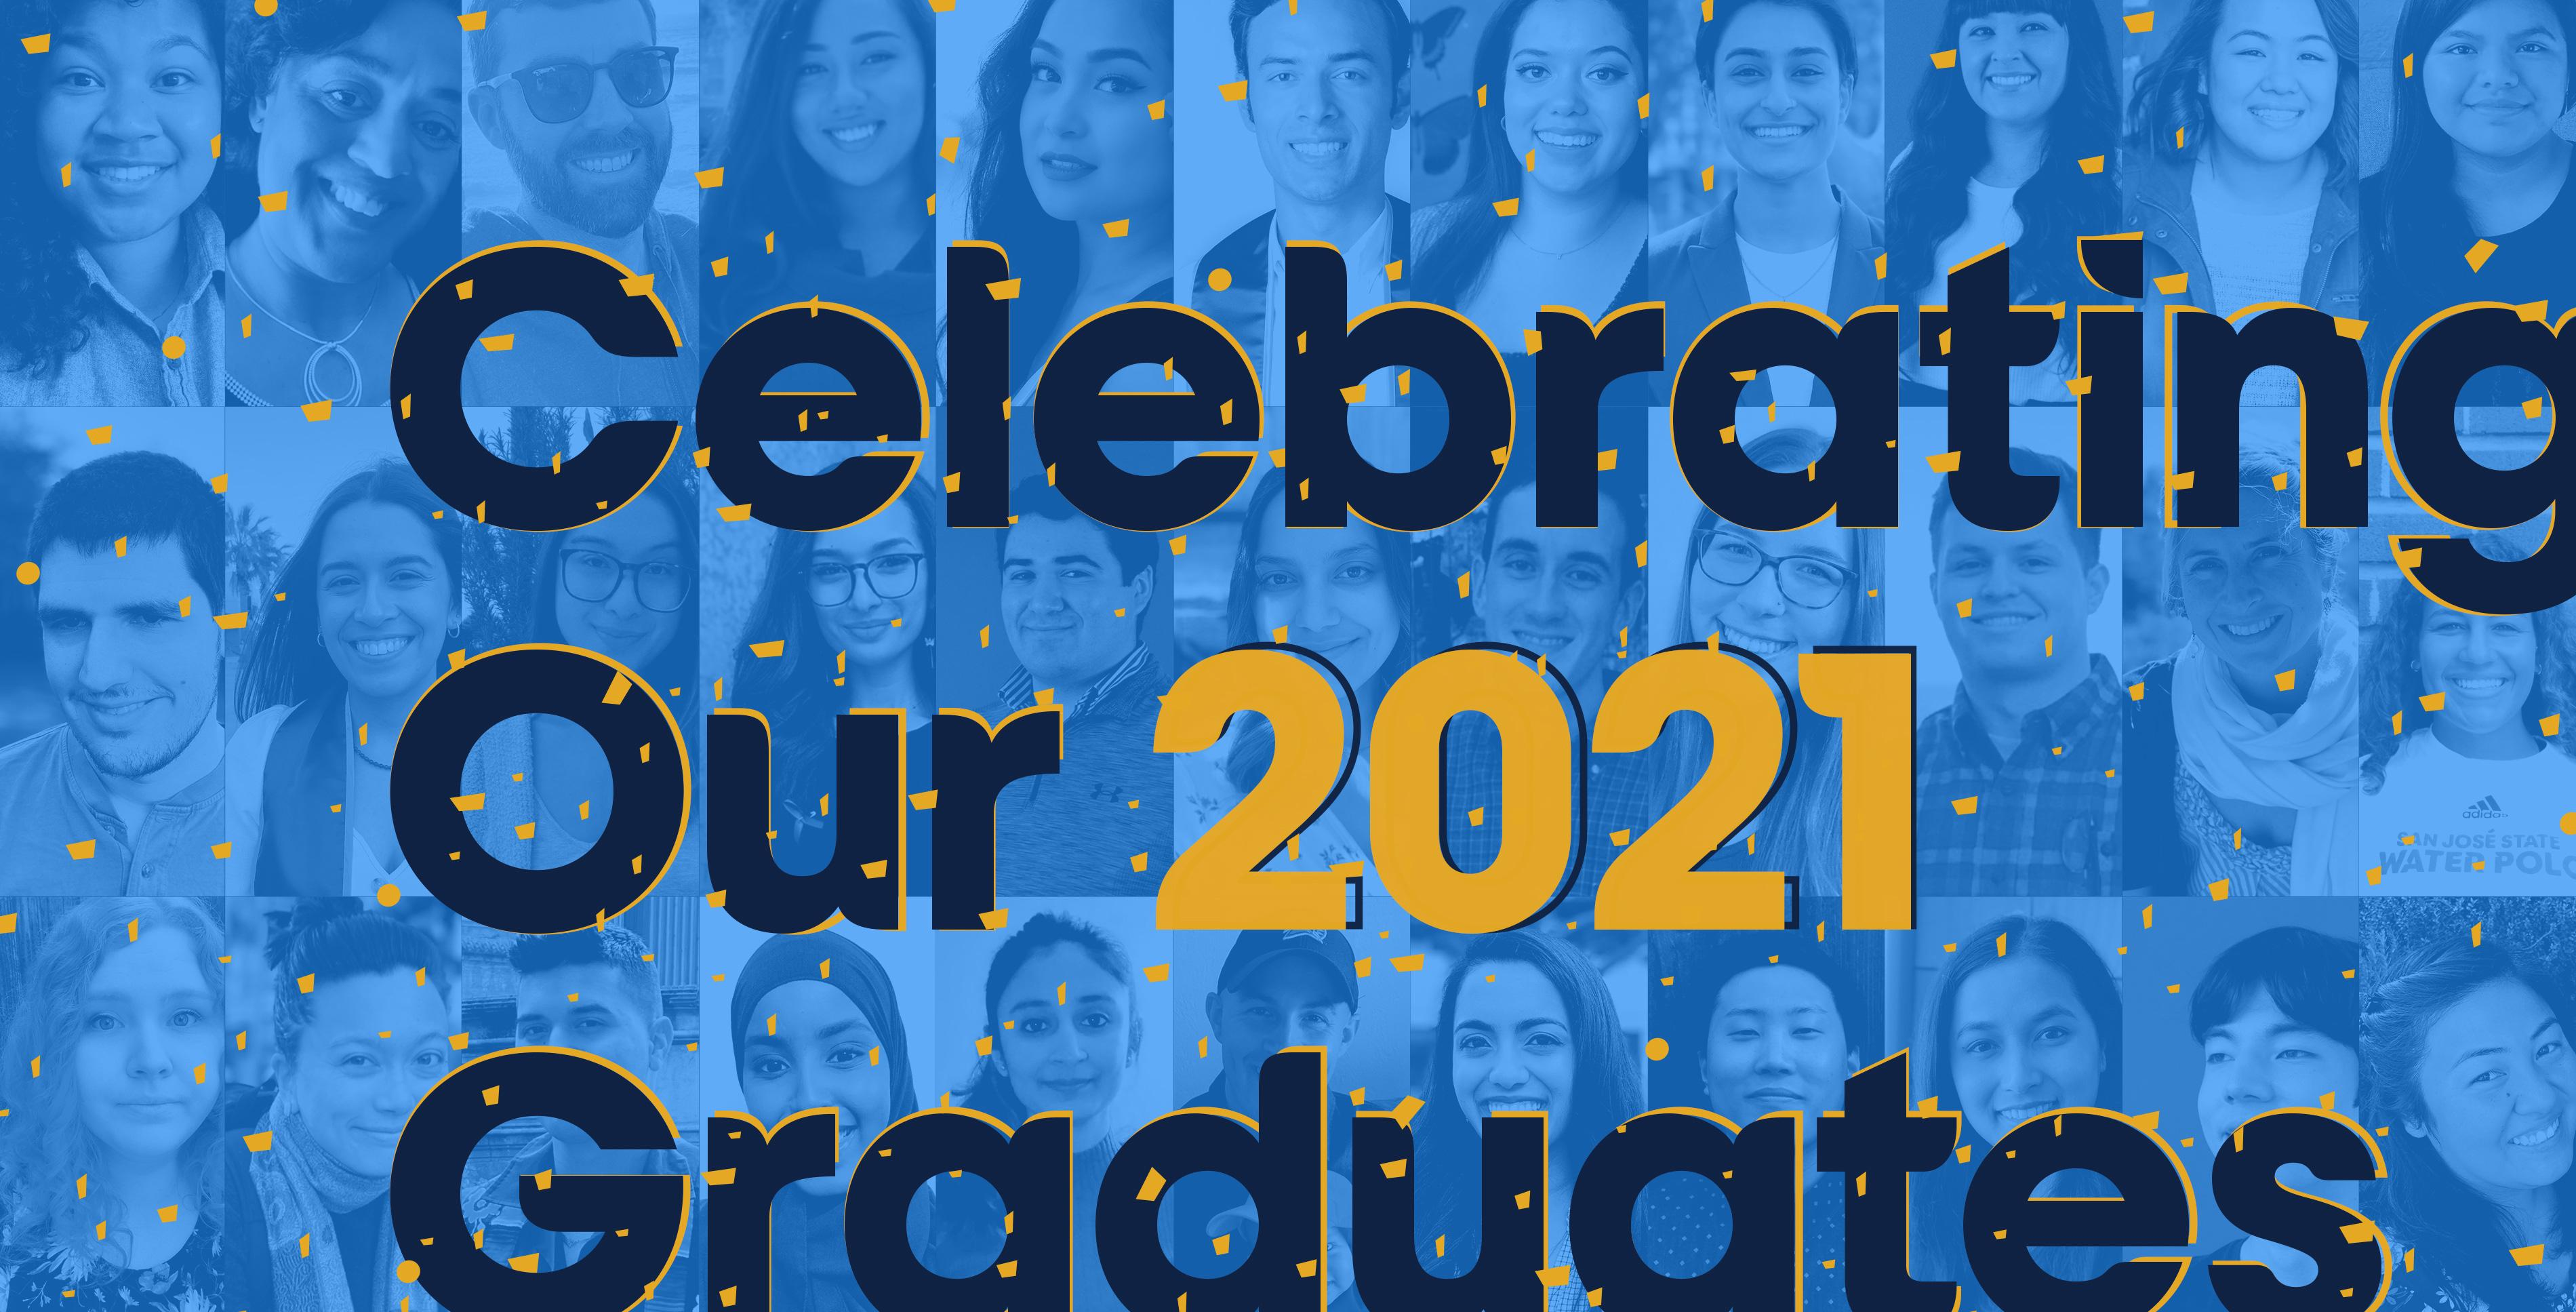 Celebrating Our 2021 Graduates with a collage of grad portraits in the background.